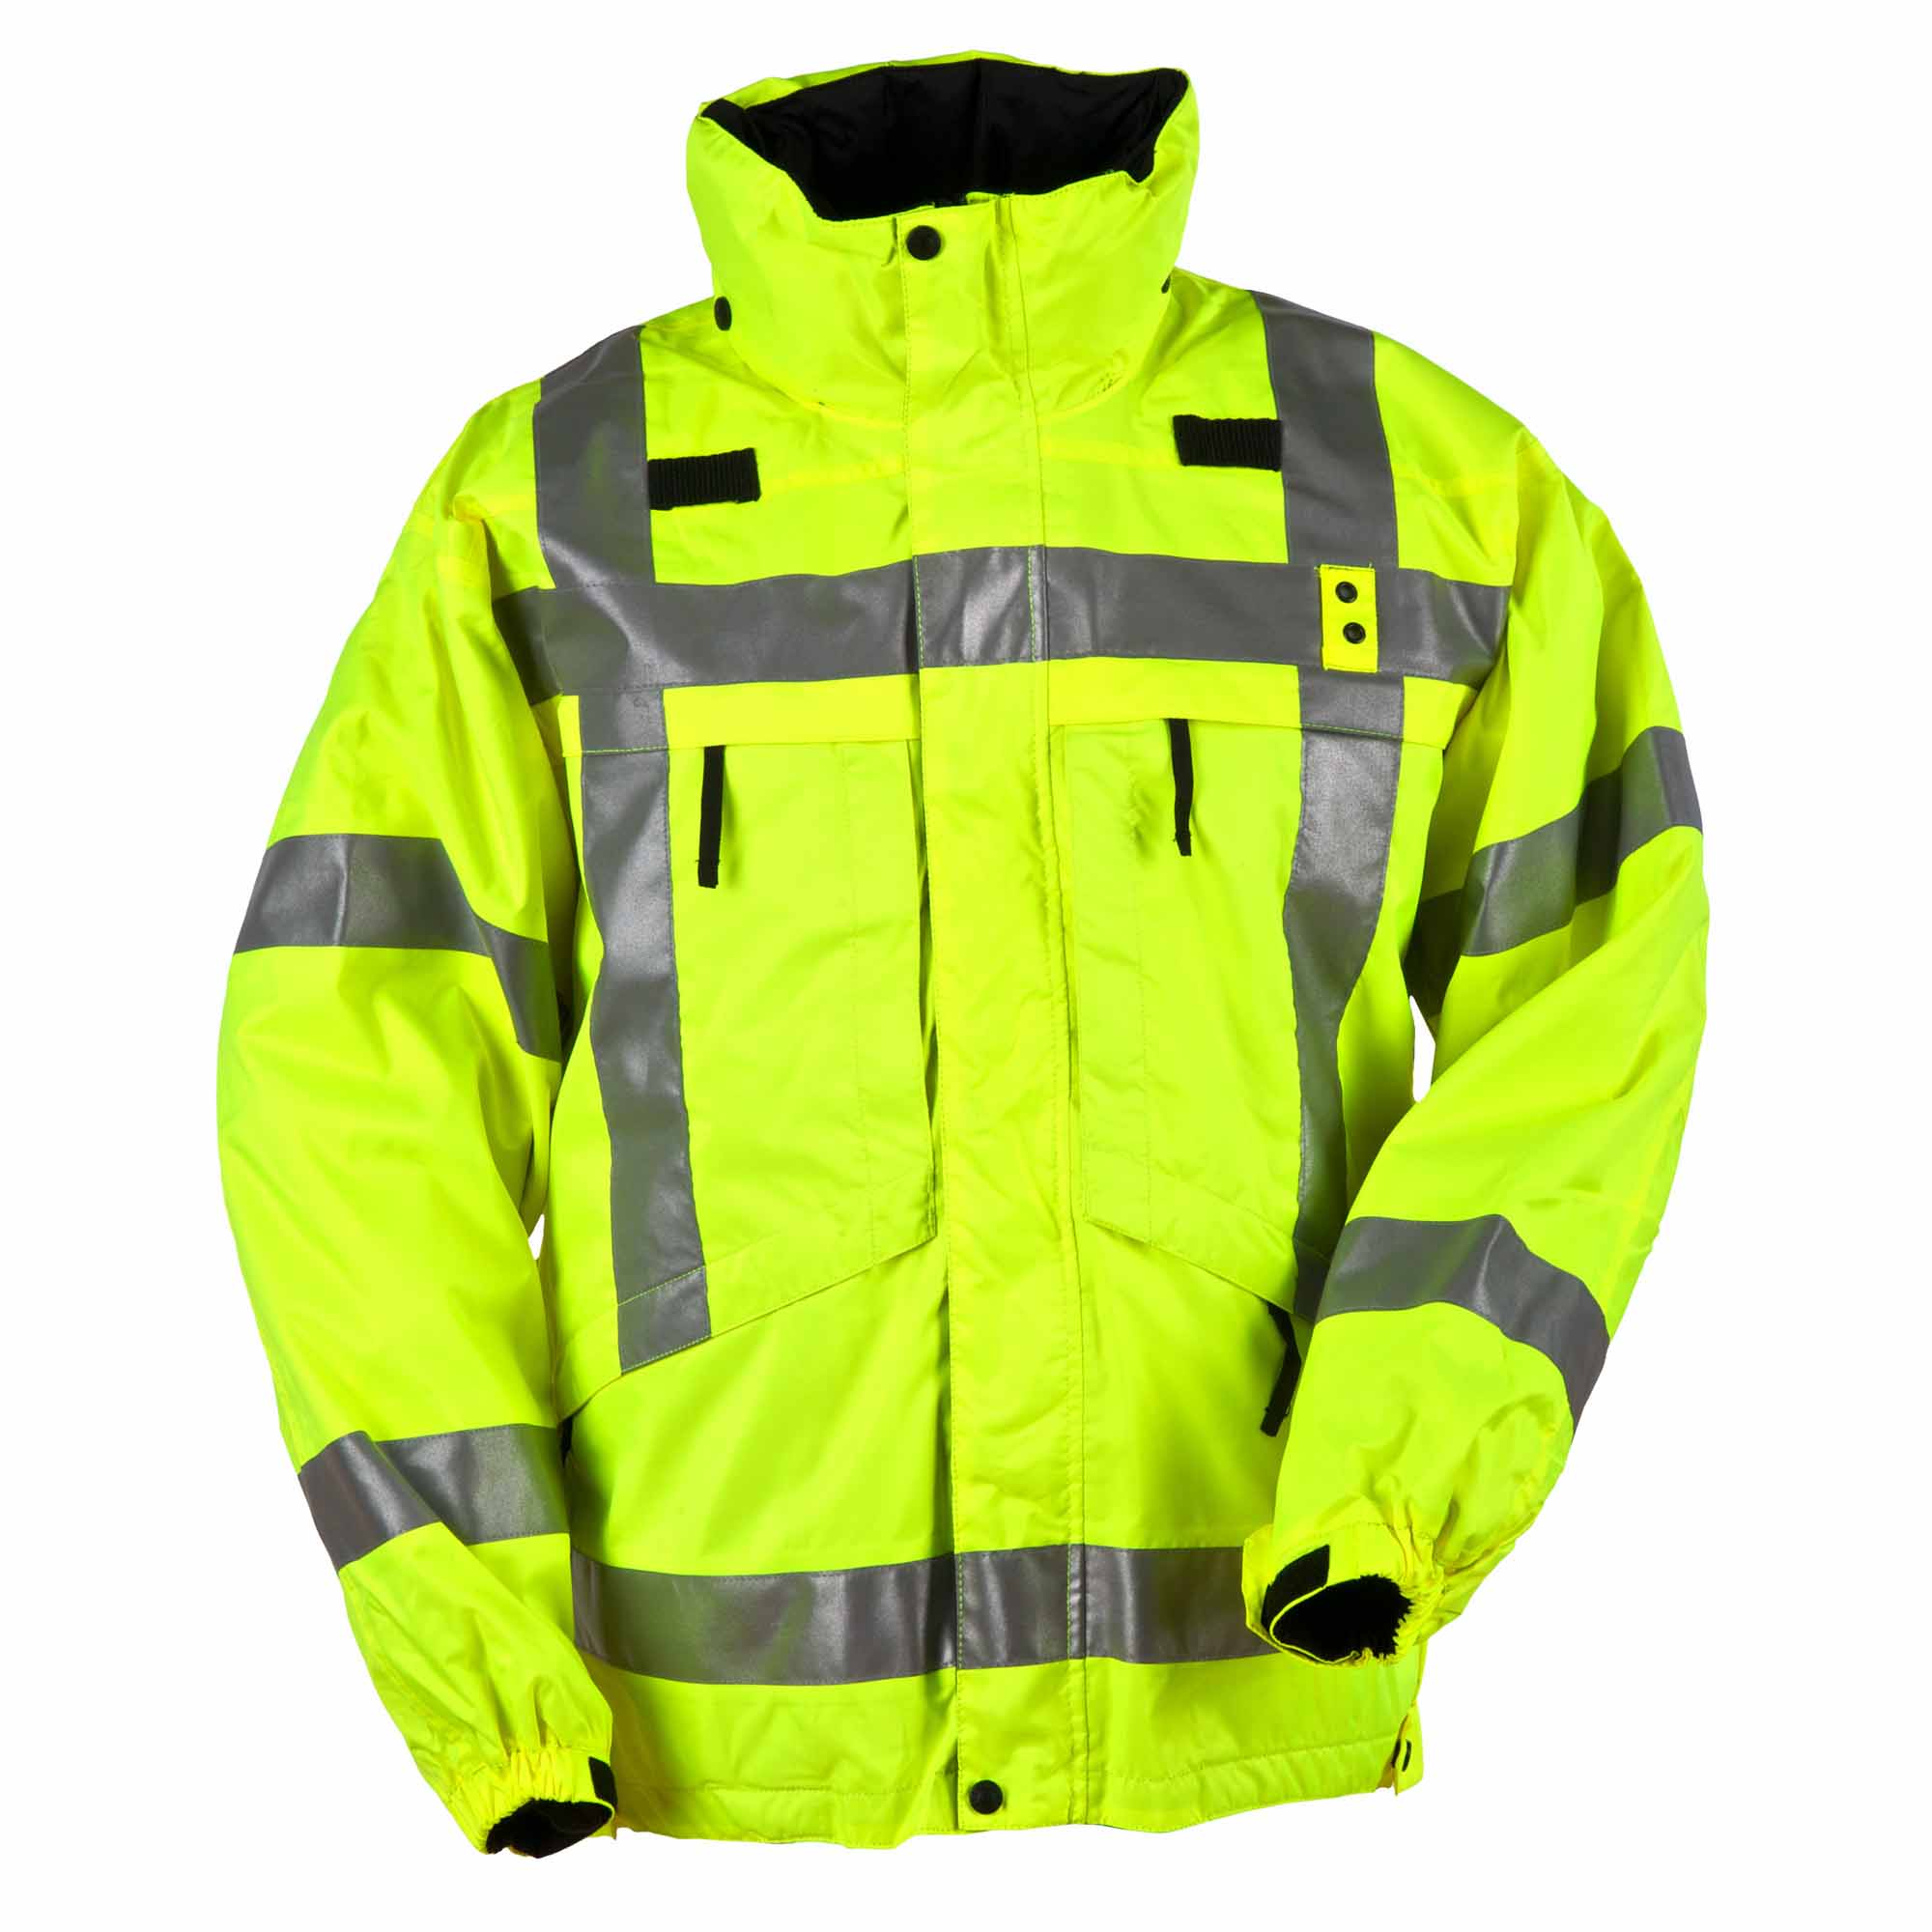 5.11 Tactical Men's 3-in-1 Reversible High-Visibility Parka Jacket (Yellow) thumbnail